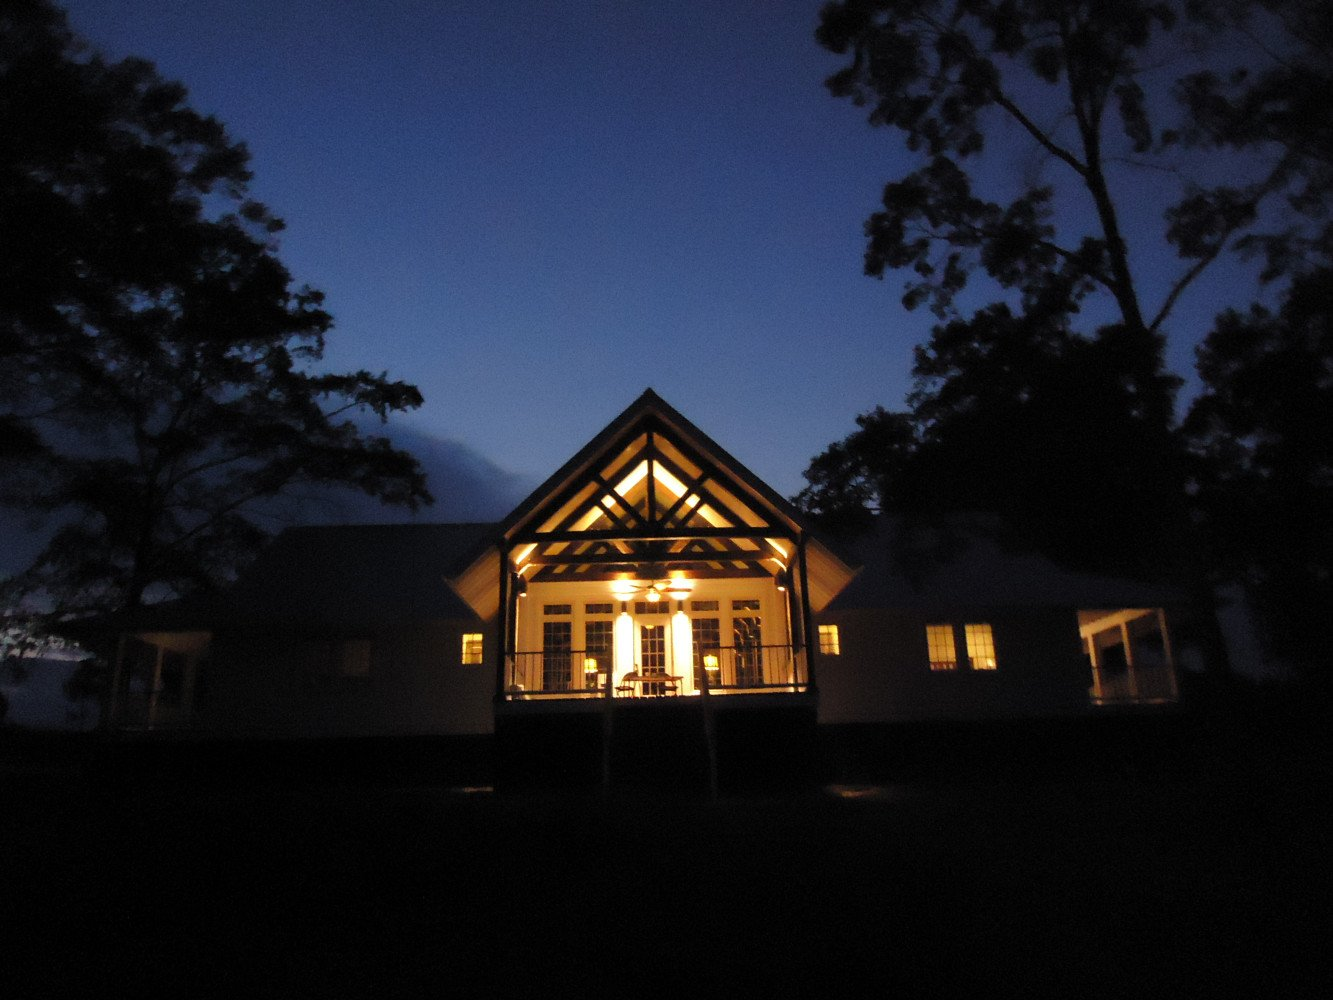 New lodge at dusk